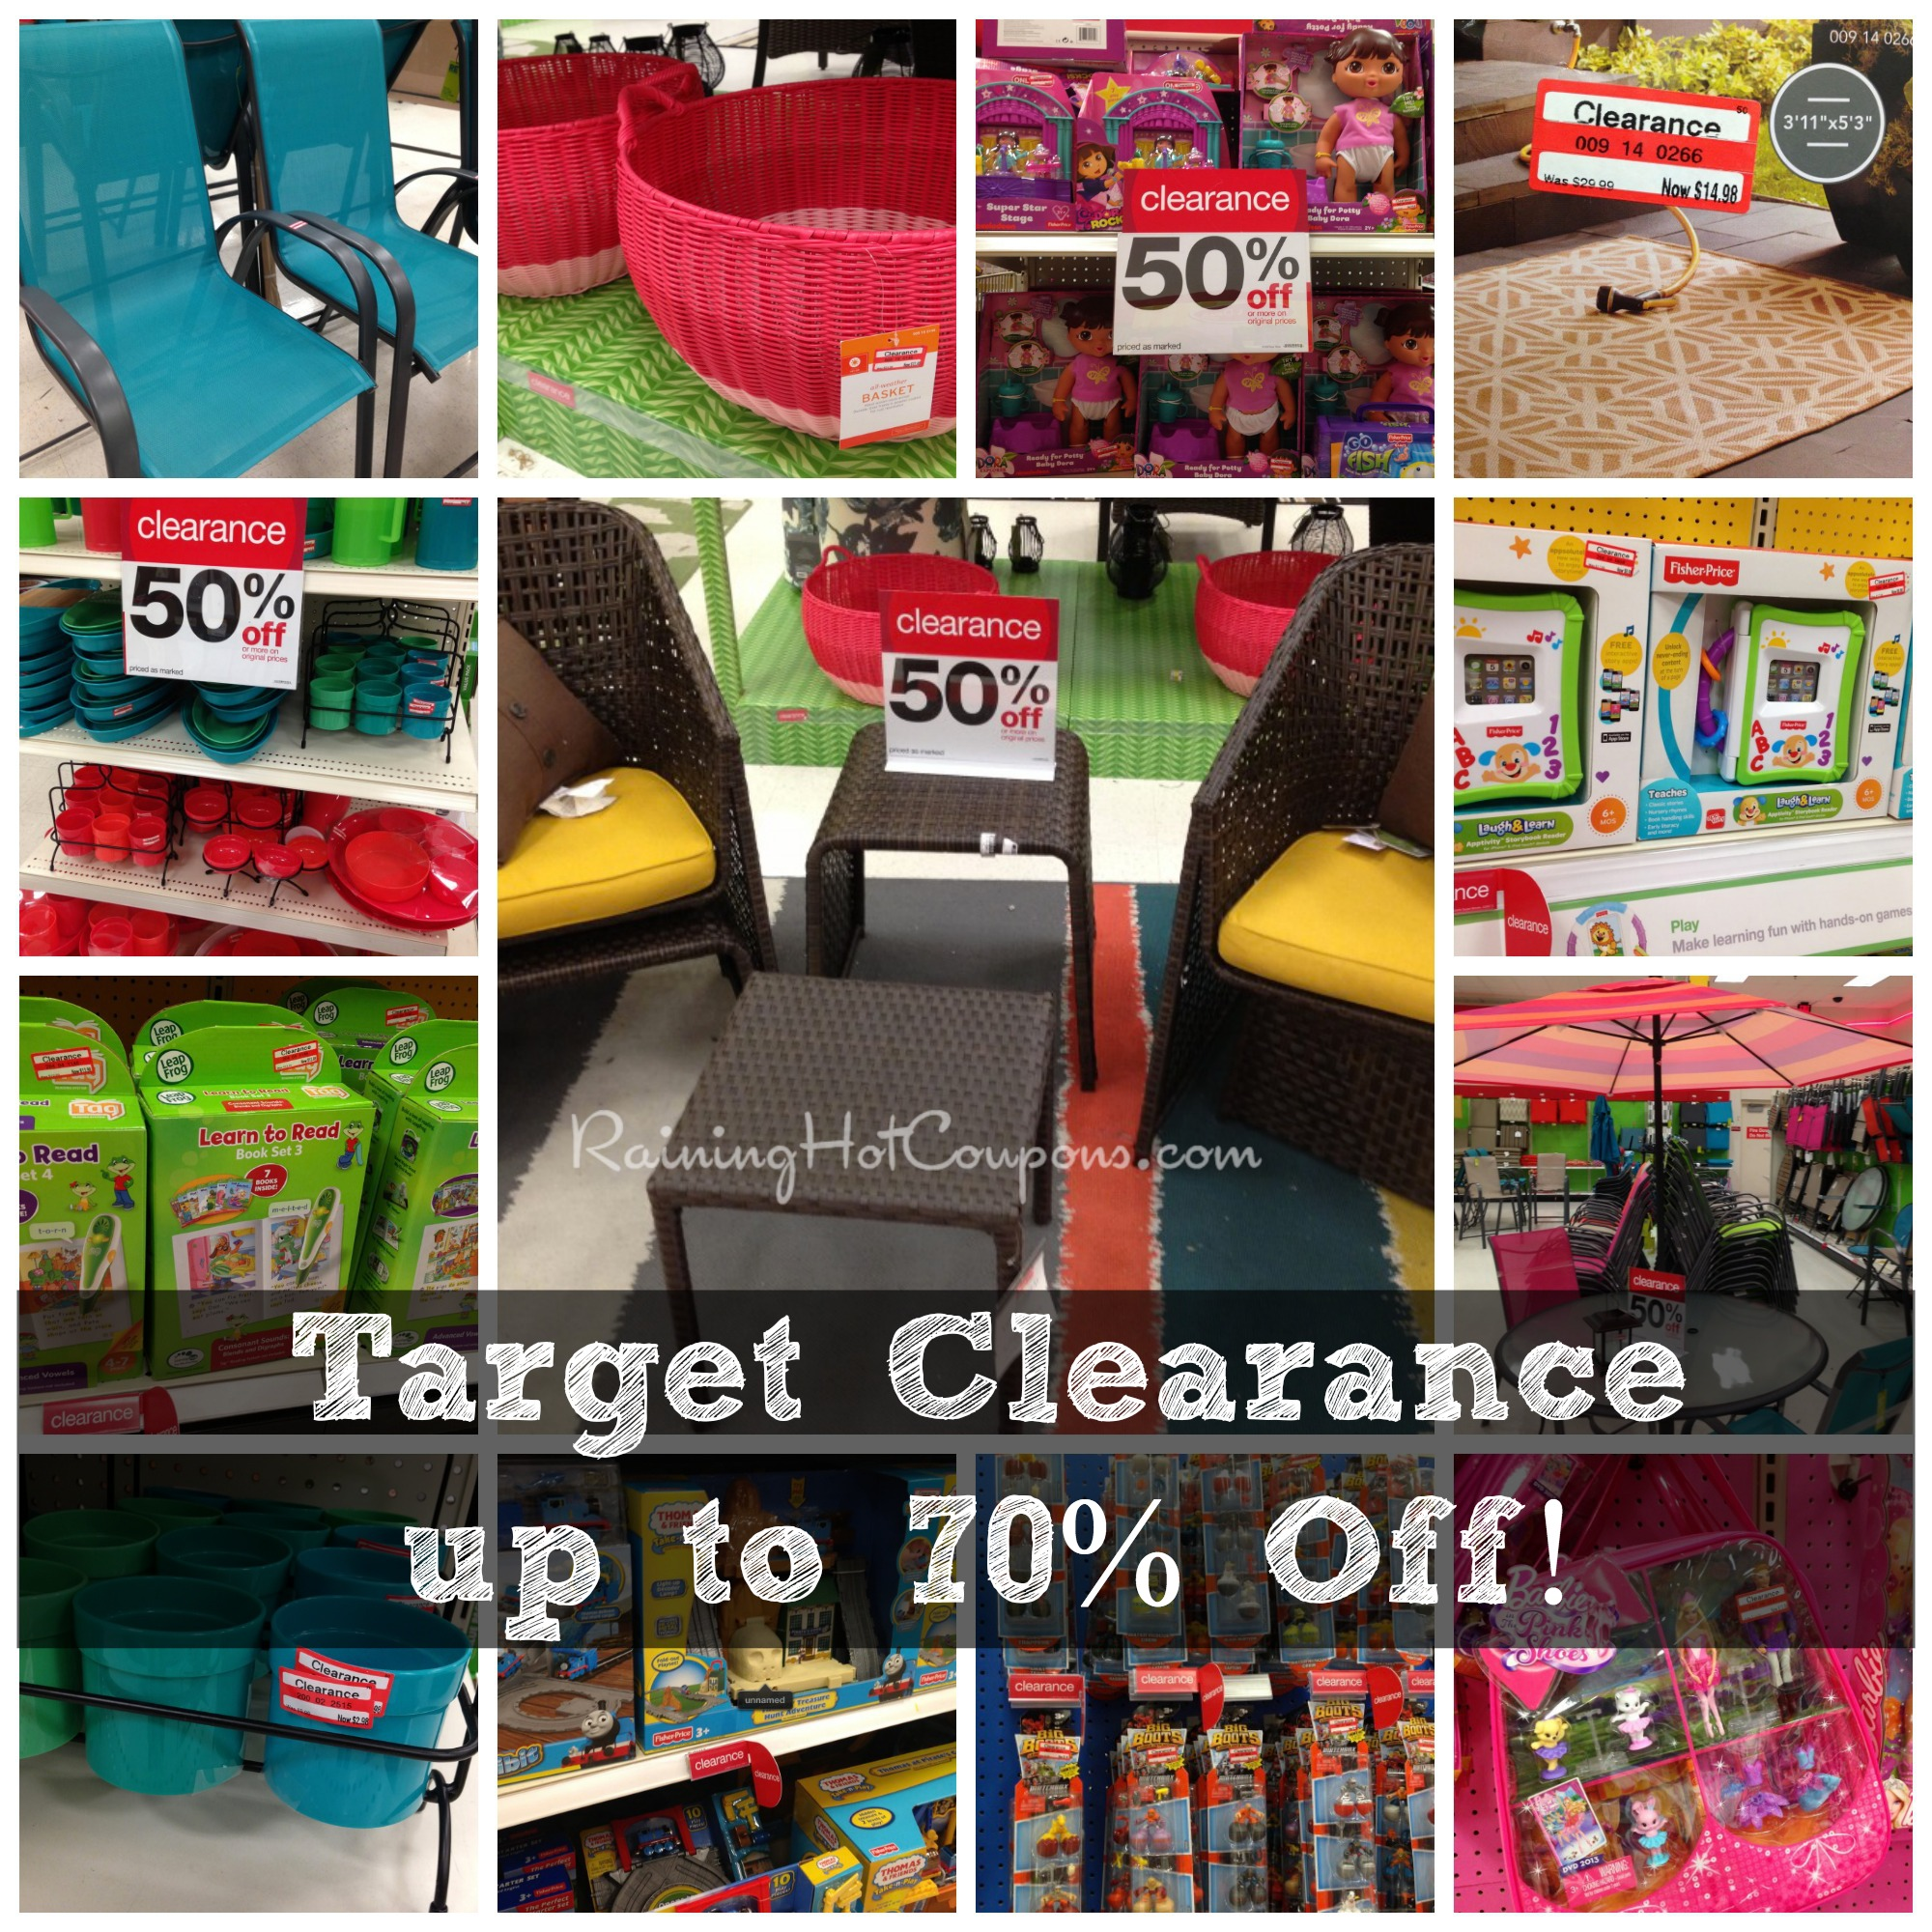 Target Clearance Deals 70 Off Tons Of Items 50 Off